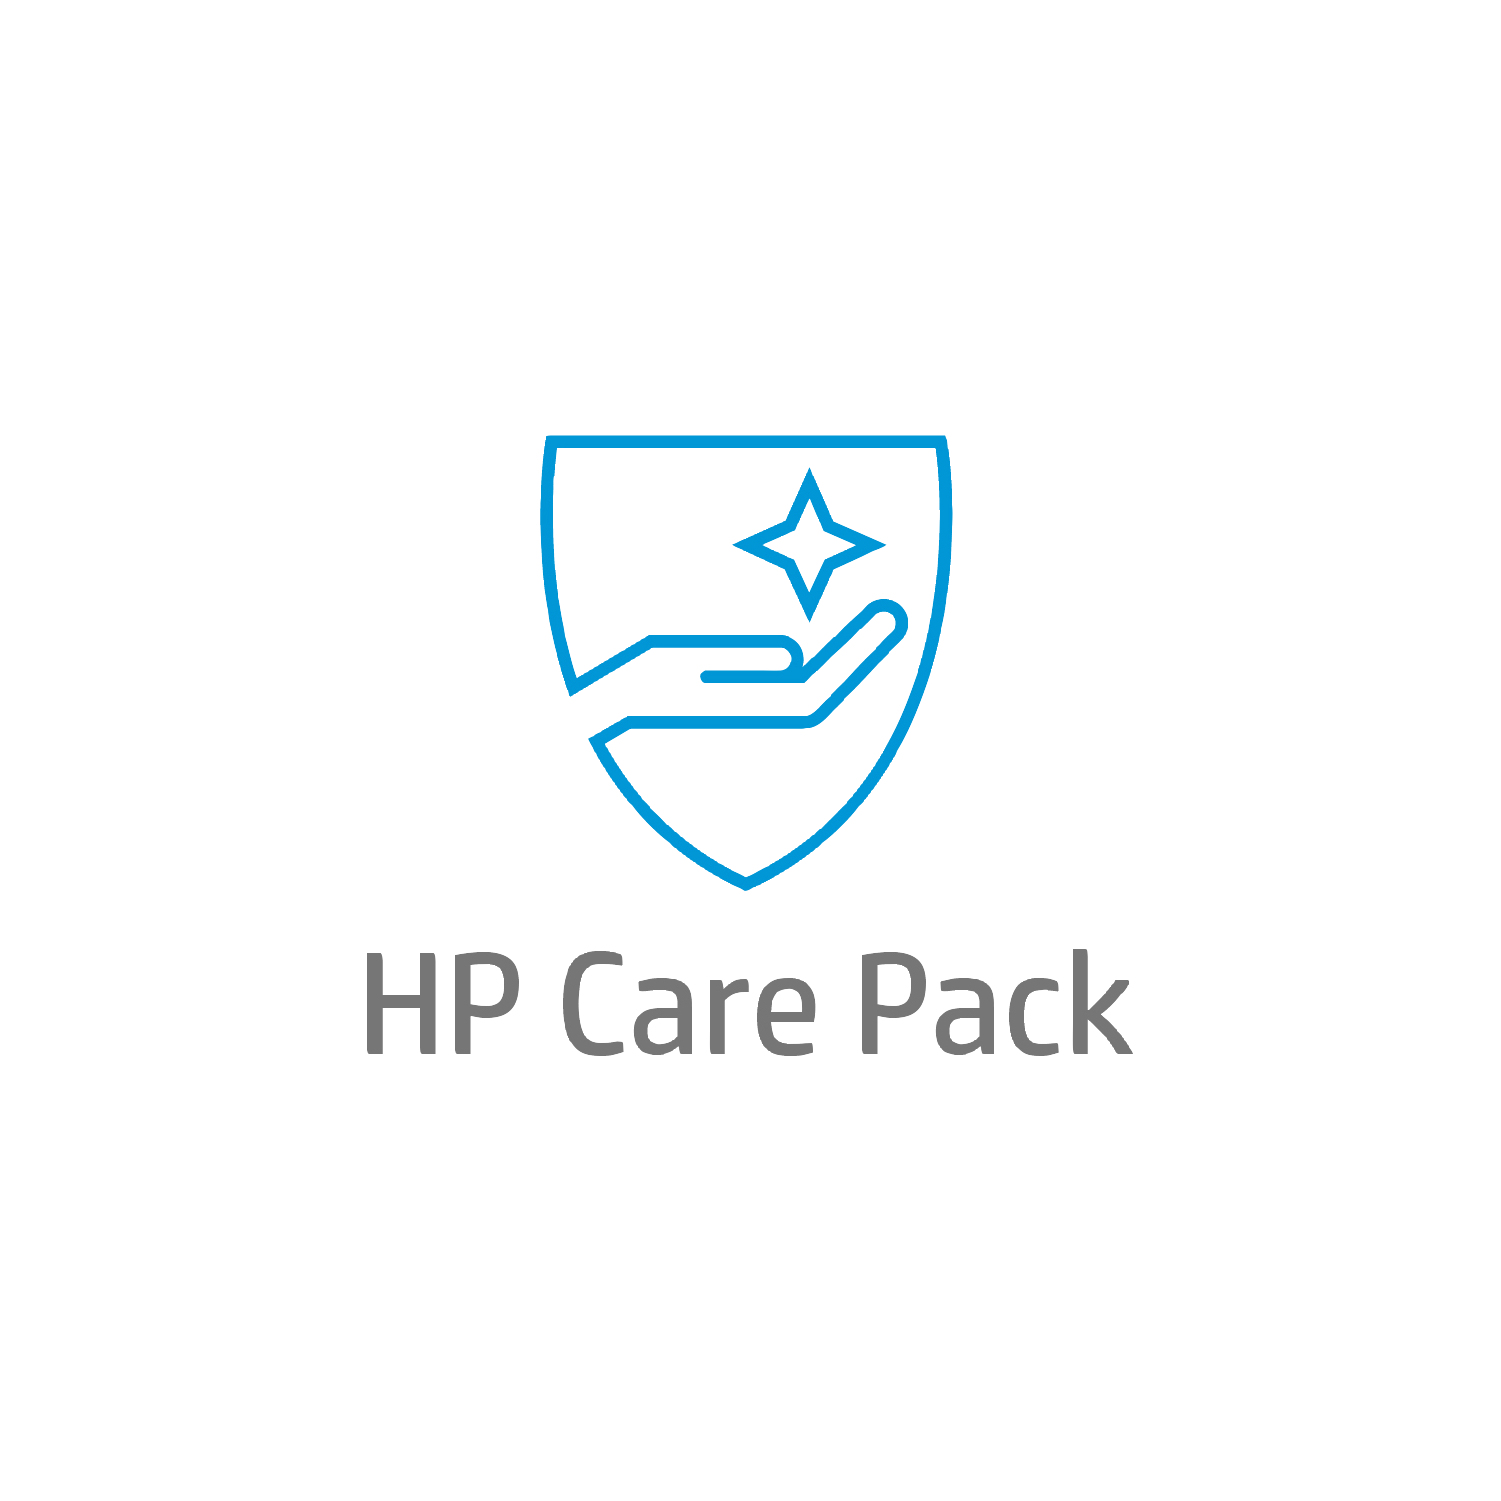 Electronic HP Care Pack Next Day Exchange Hardware Support - Extended Service Agreement - Replacement - 2 Years - Shipment - NBD UX434E - C2000